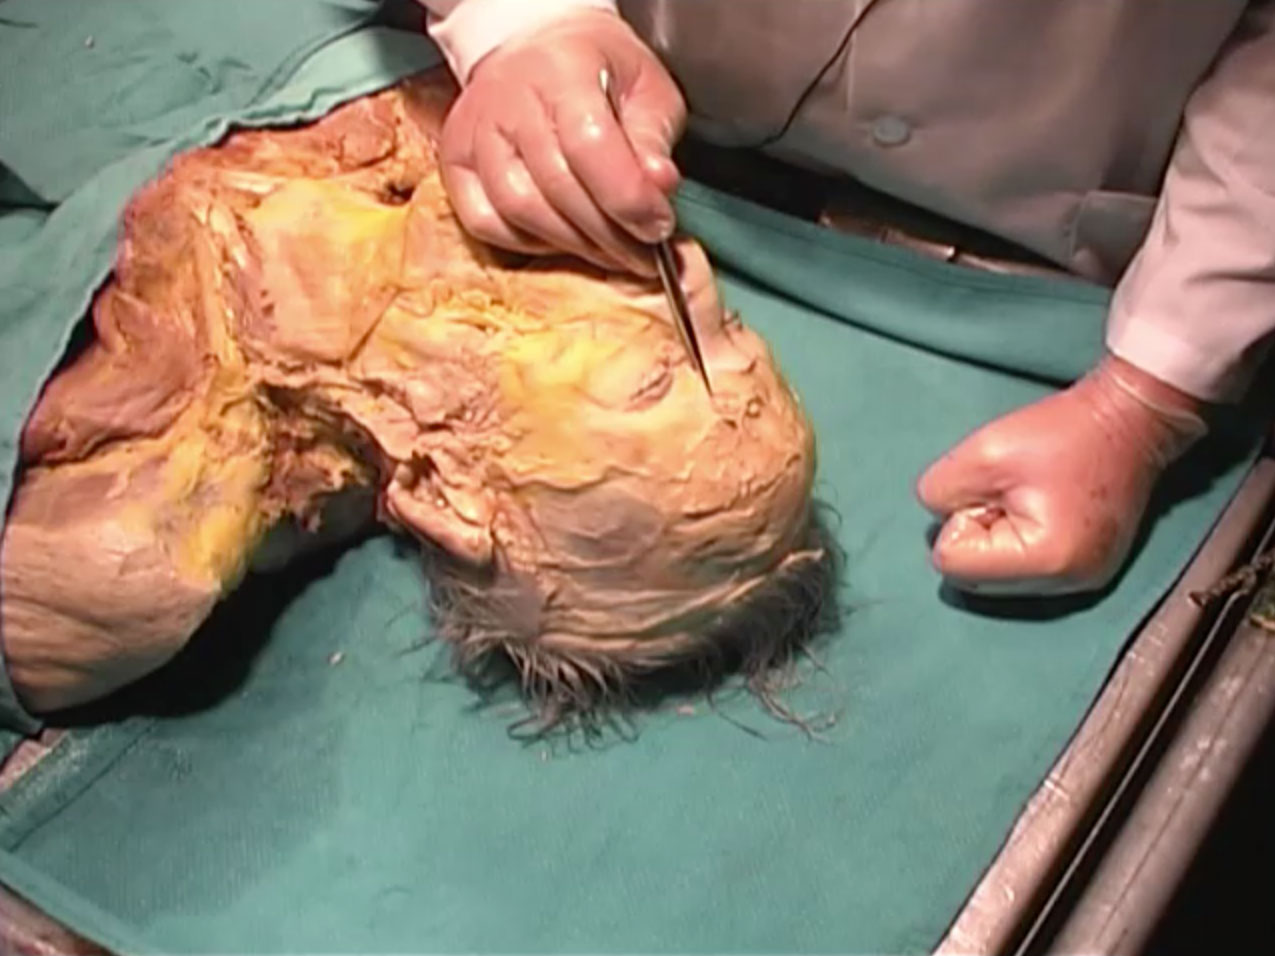 Picture from Dissection 10 Superficial Face and Neck video